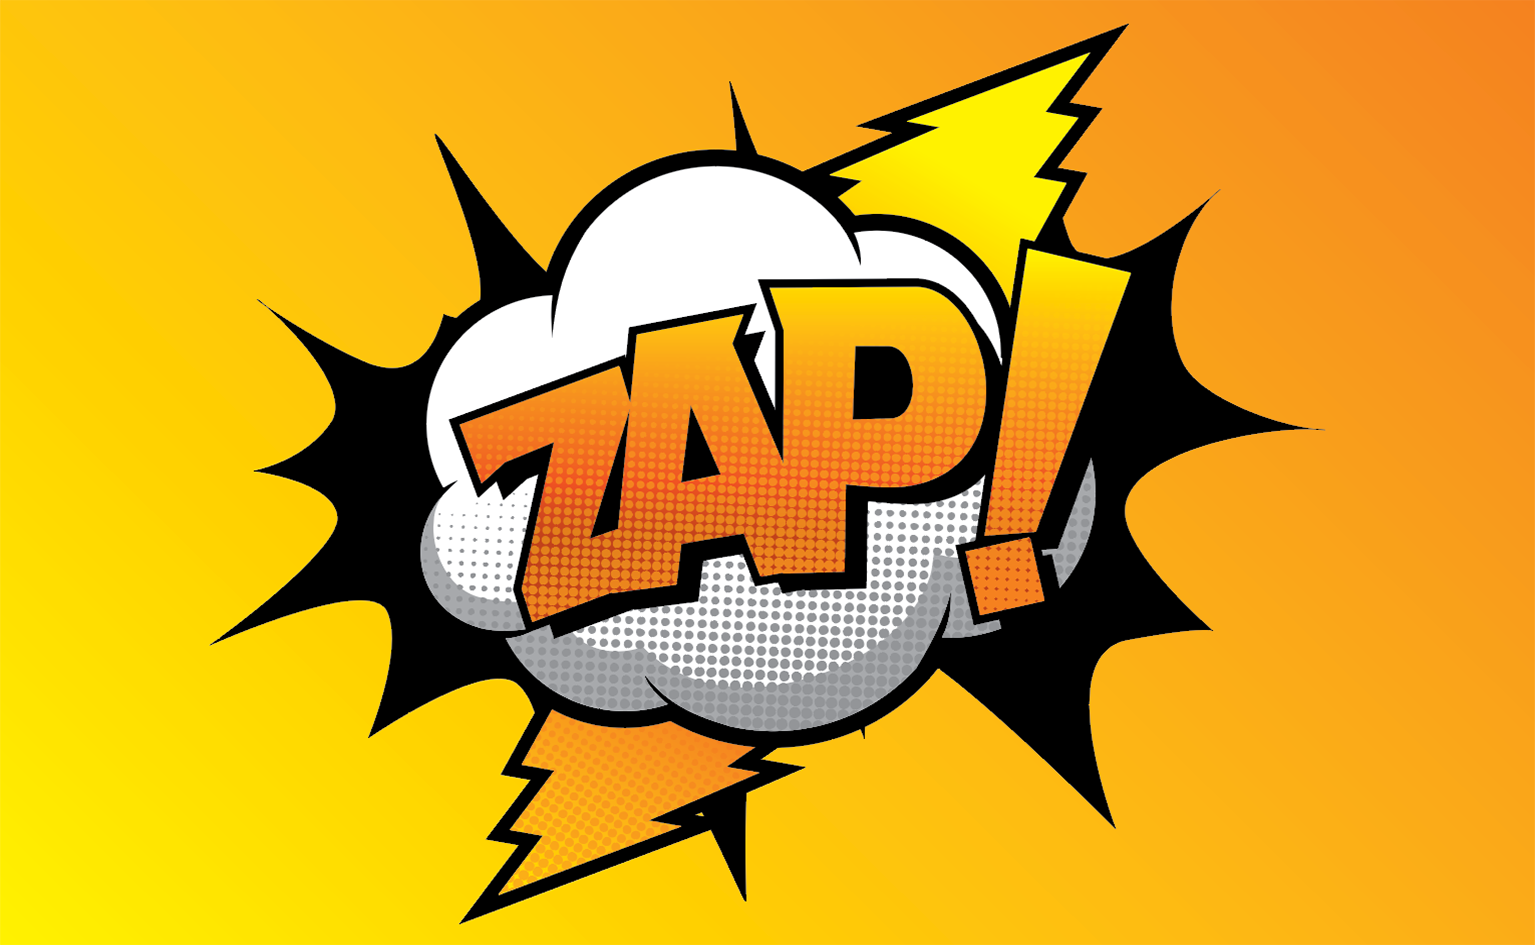 ZAP! RETRO POP ART COMIC STYLE VINTAGE WALL ART - wallart.london